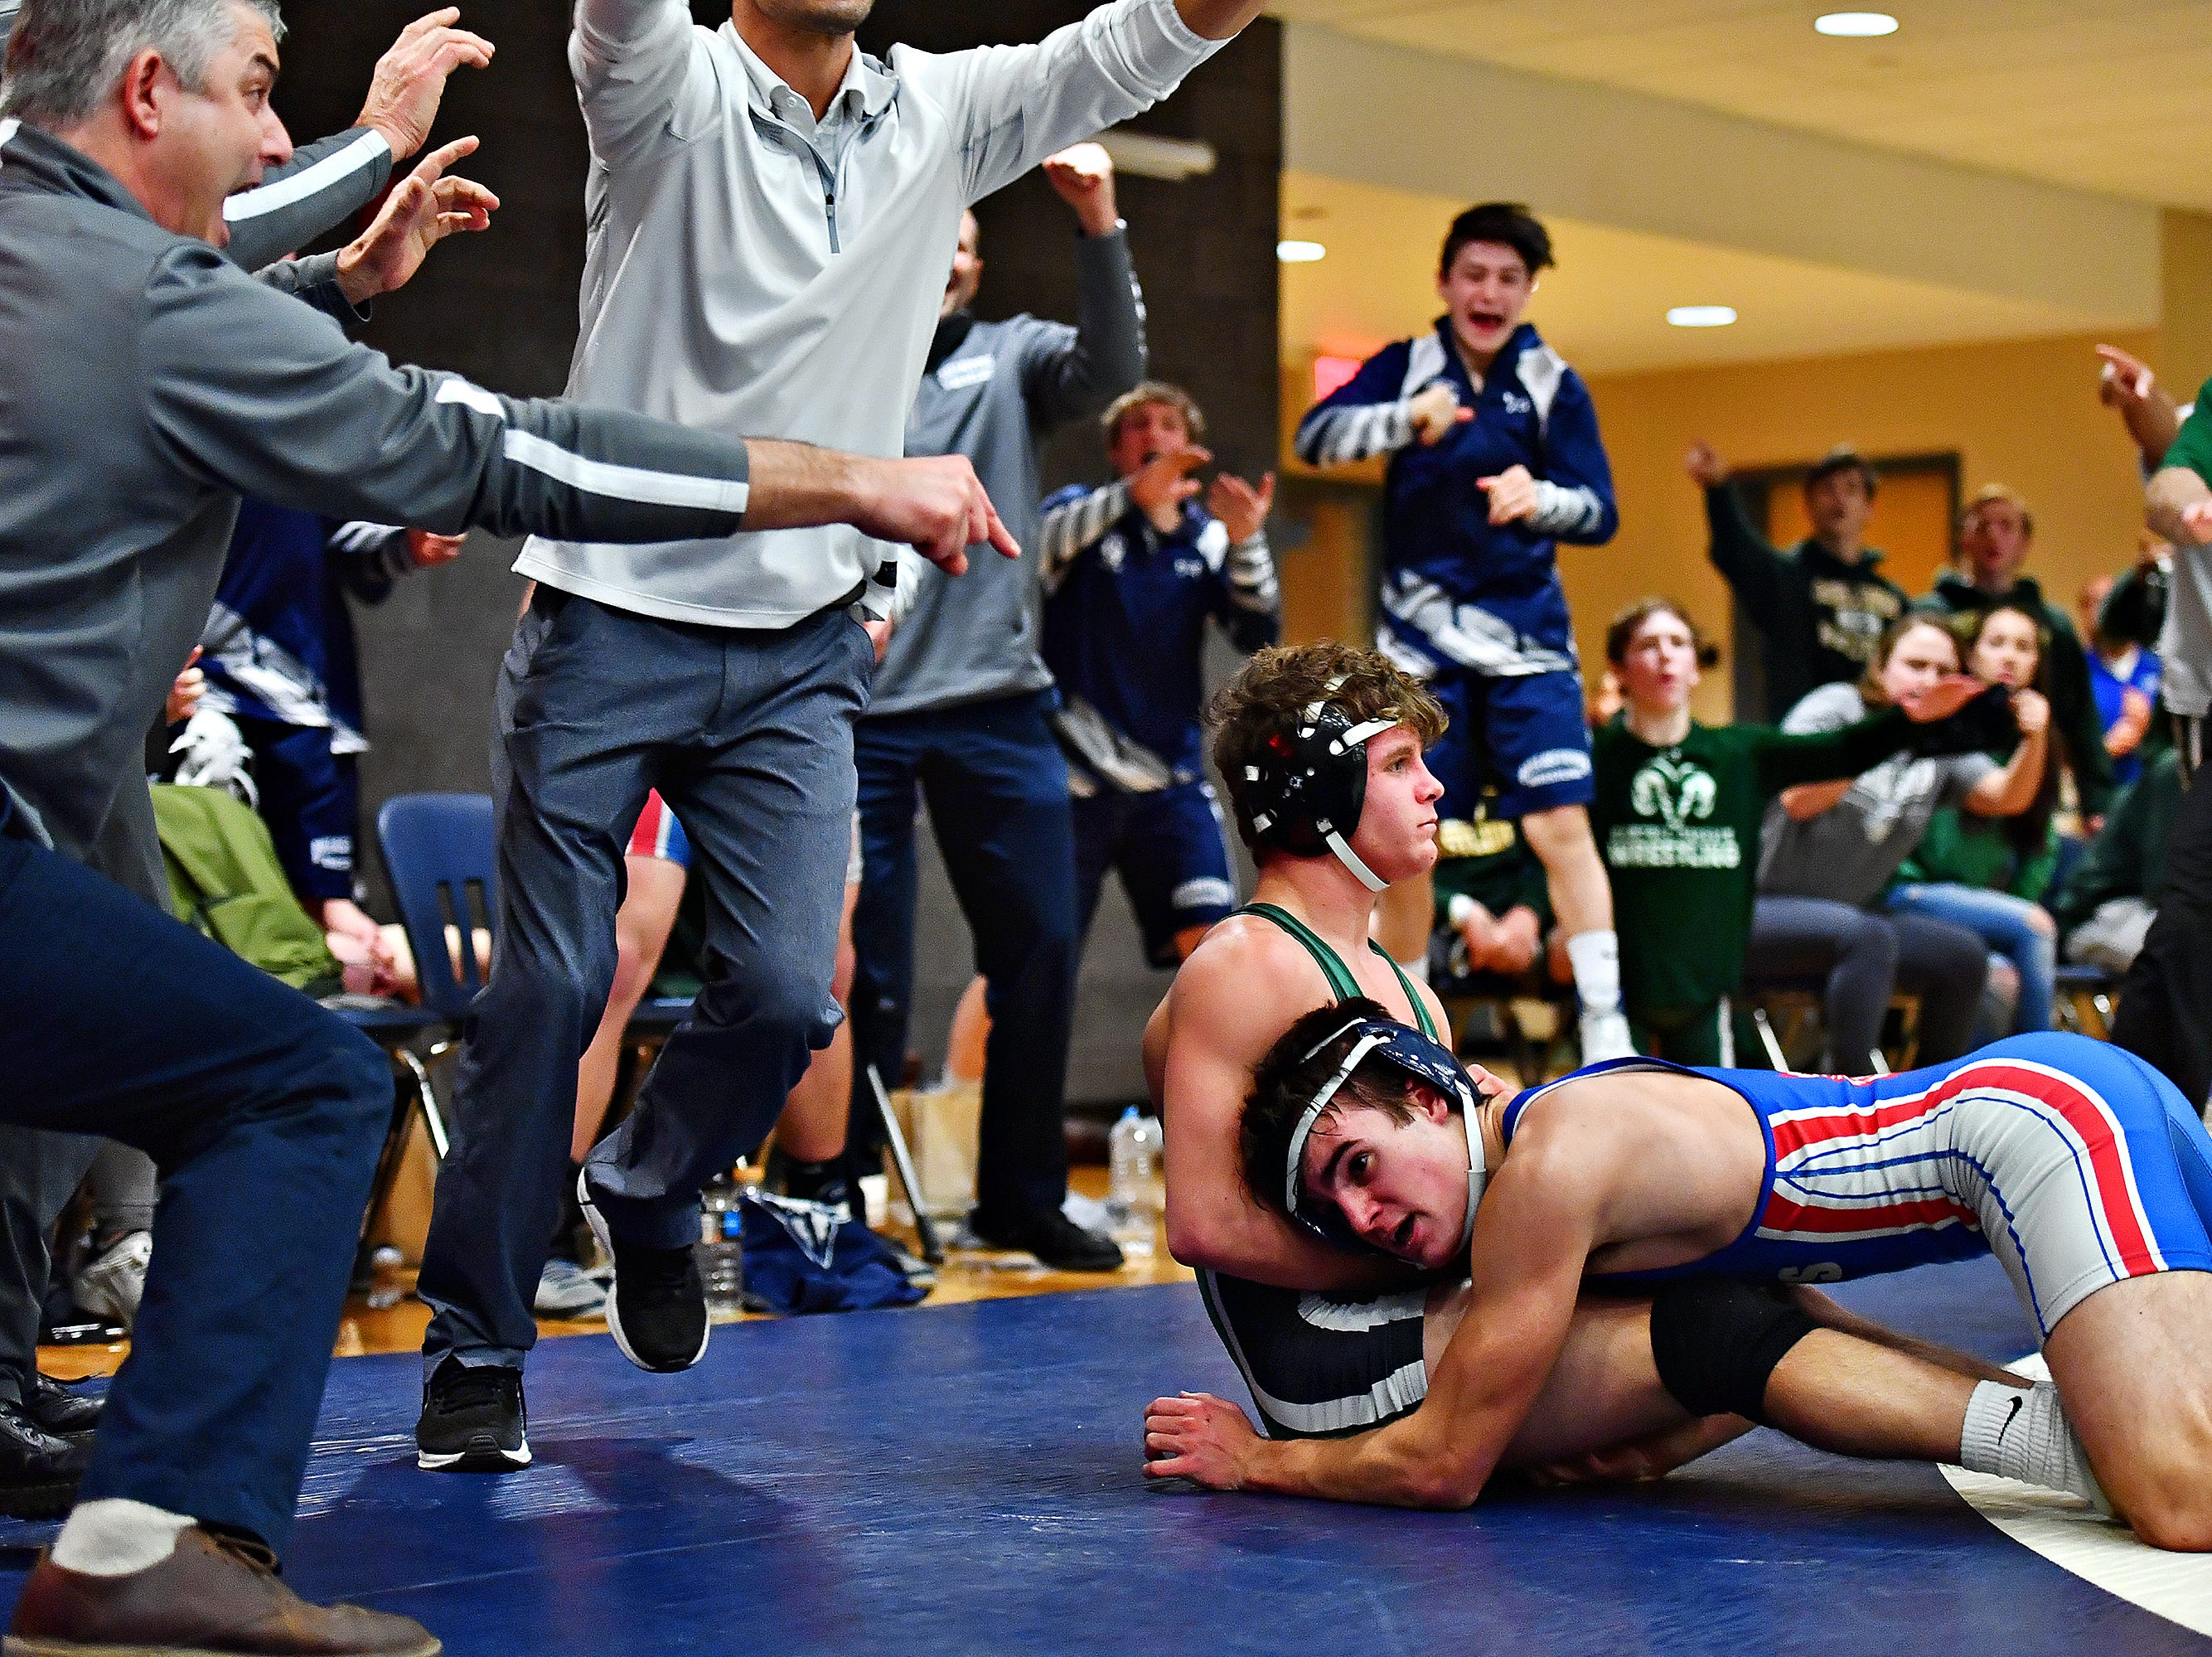 Dallastown's Donovan Trauger, right, wrestles Central Dauphin's Tyler Faust in the 126 pound weight class during District 3, Class 3A wrestling semifinal action at Spring Grove Area High School in Jackson Township, Thursday, Jan. 31, 2019. Dawn J. Sagert photo